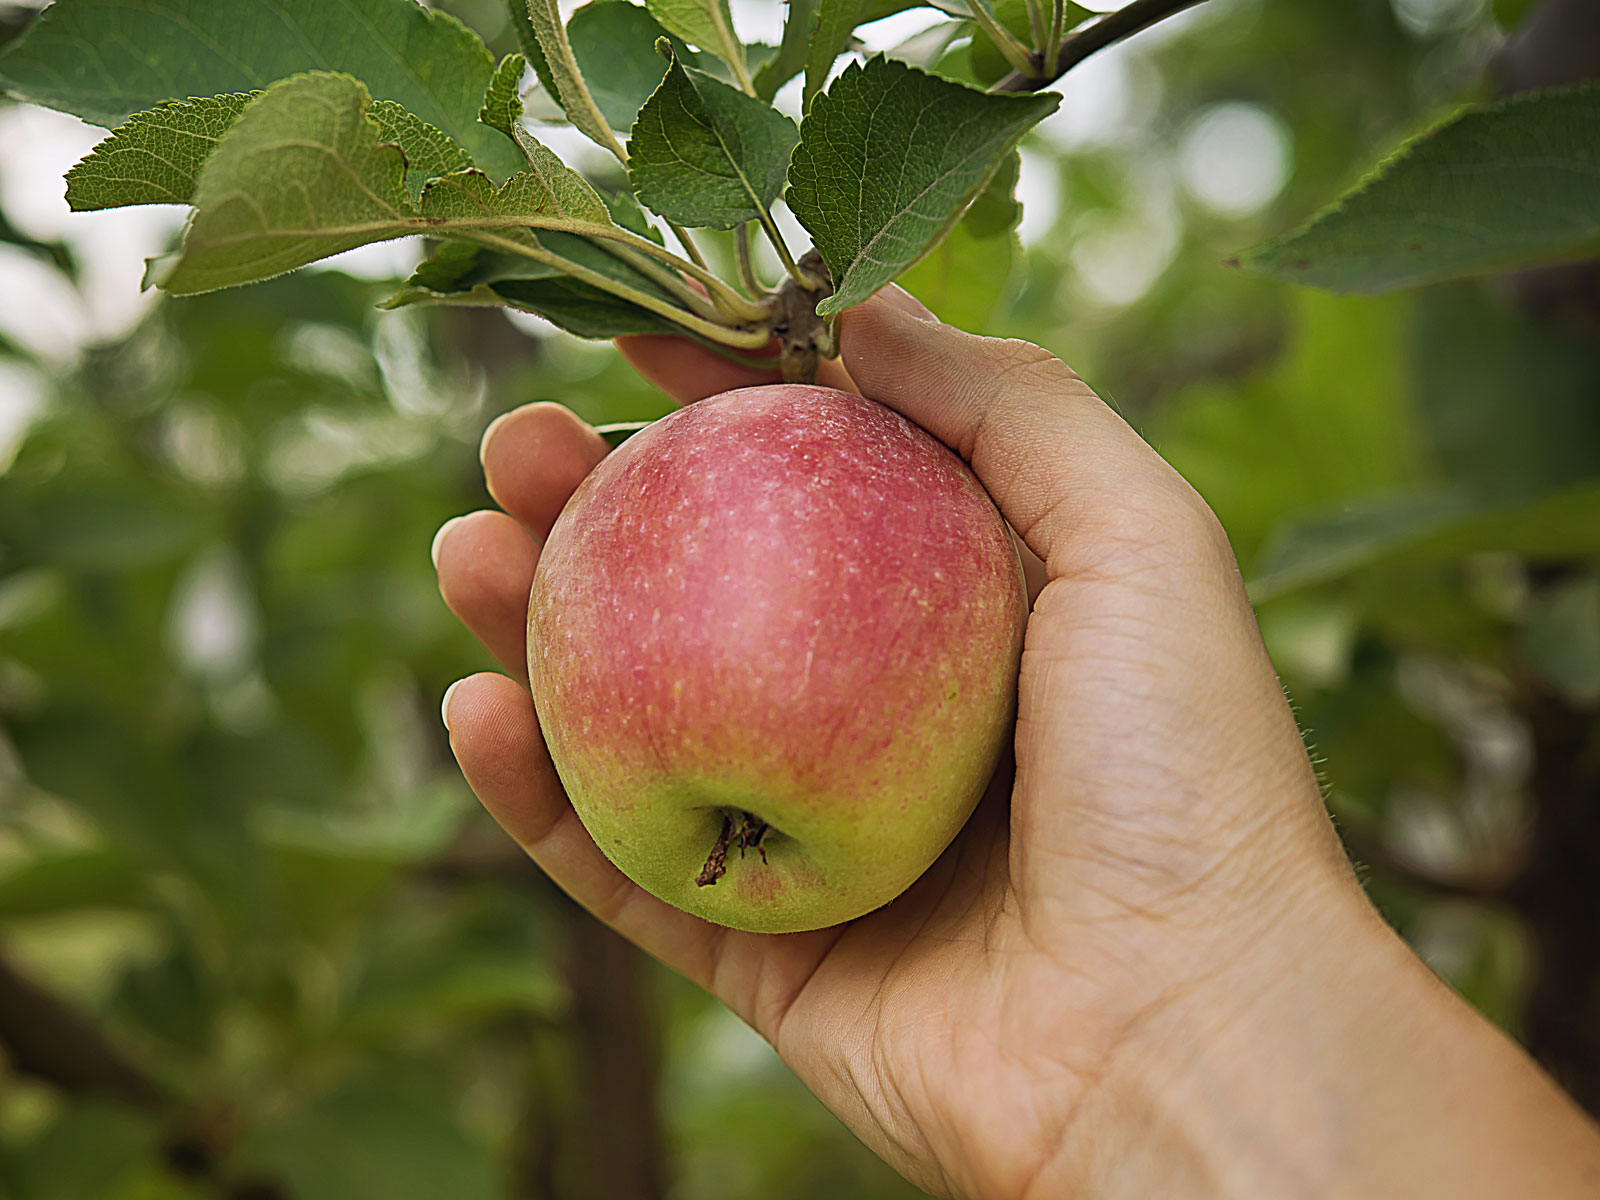 How Do You Even Steal 50,000 Apples?